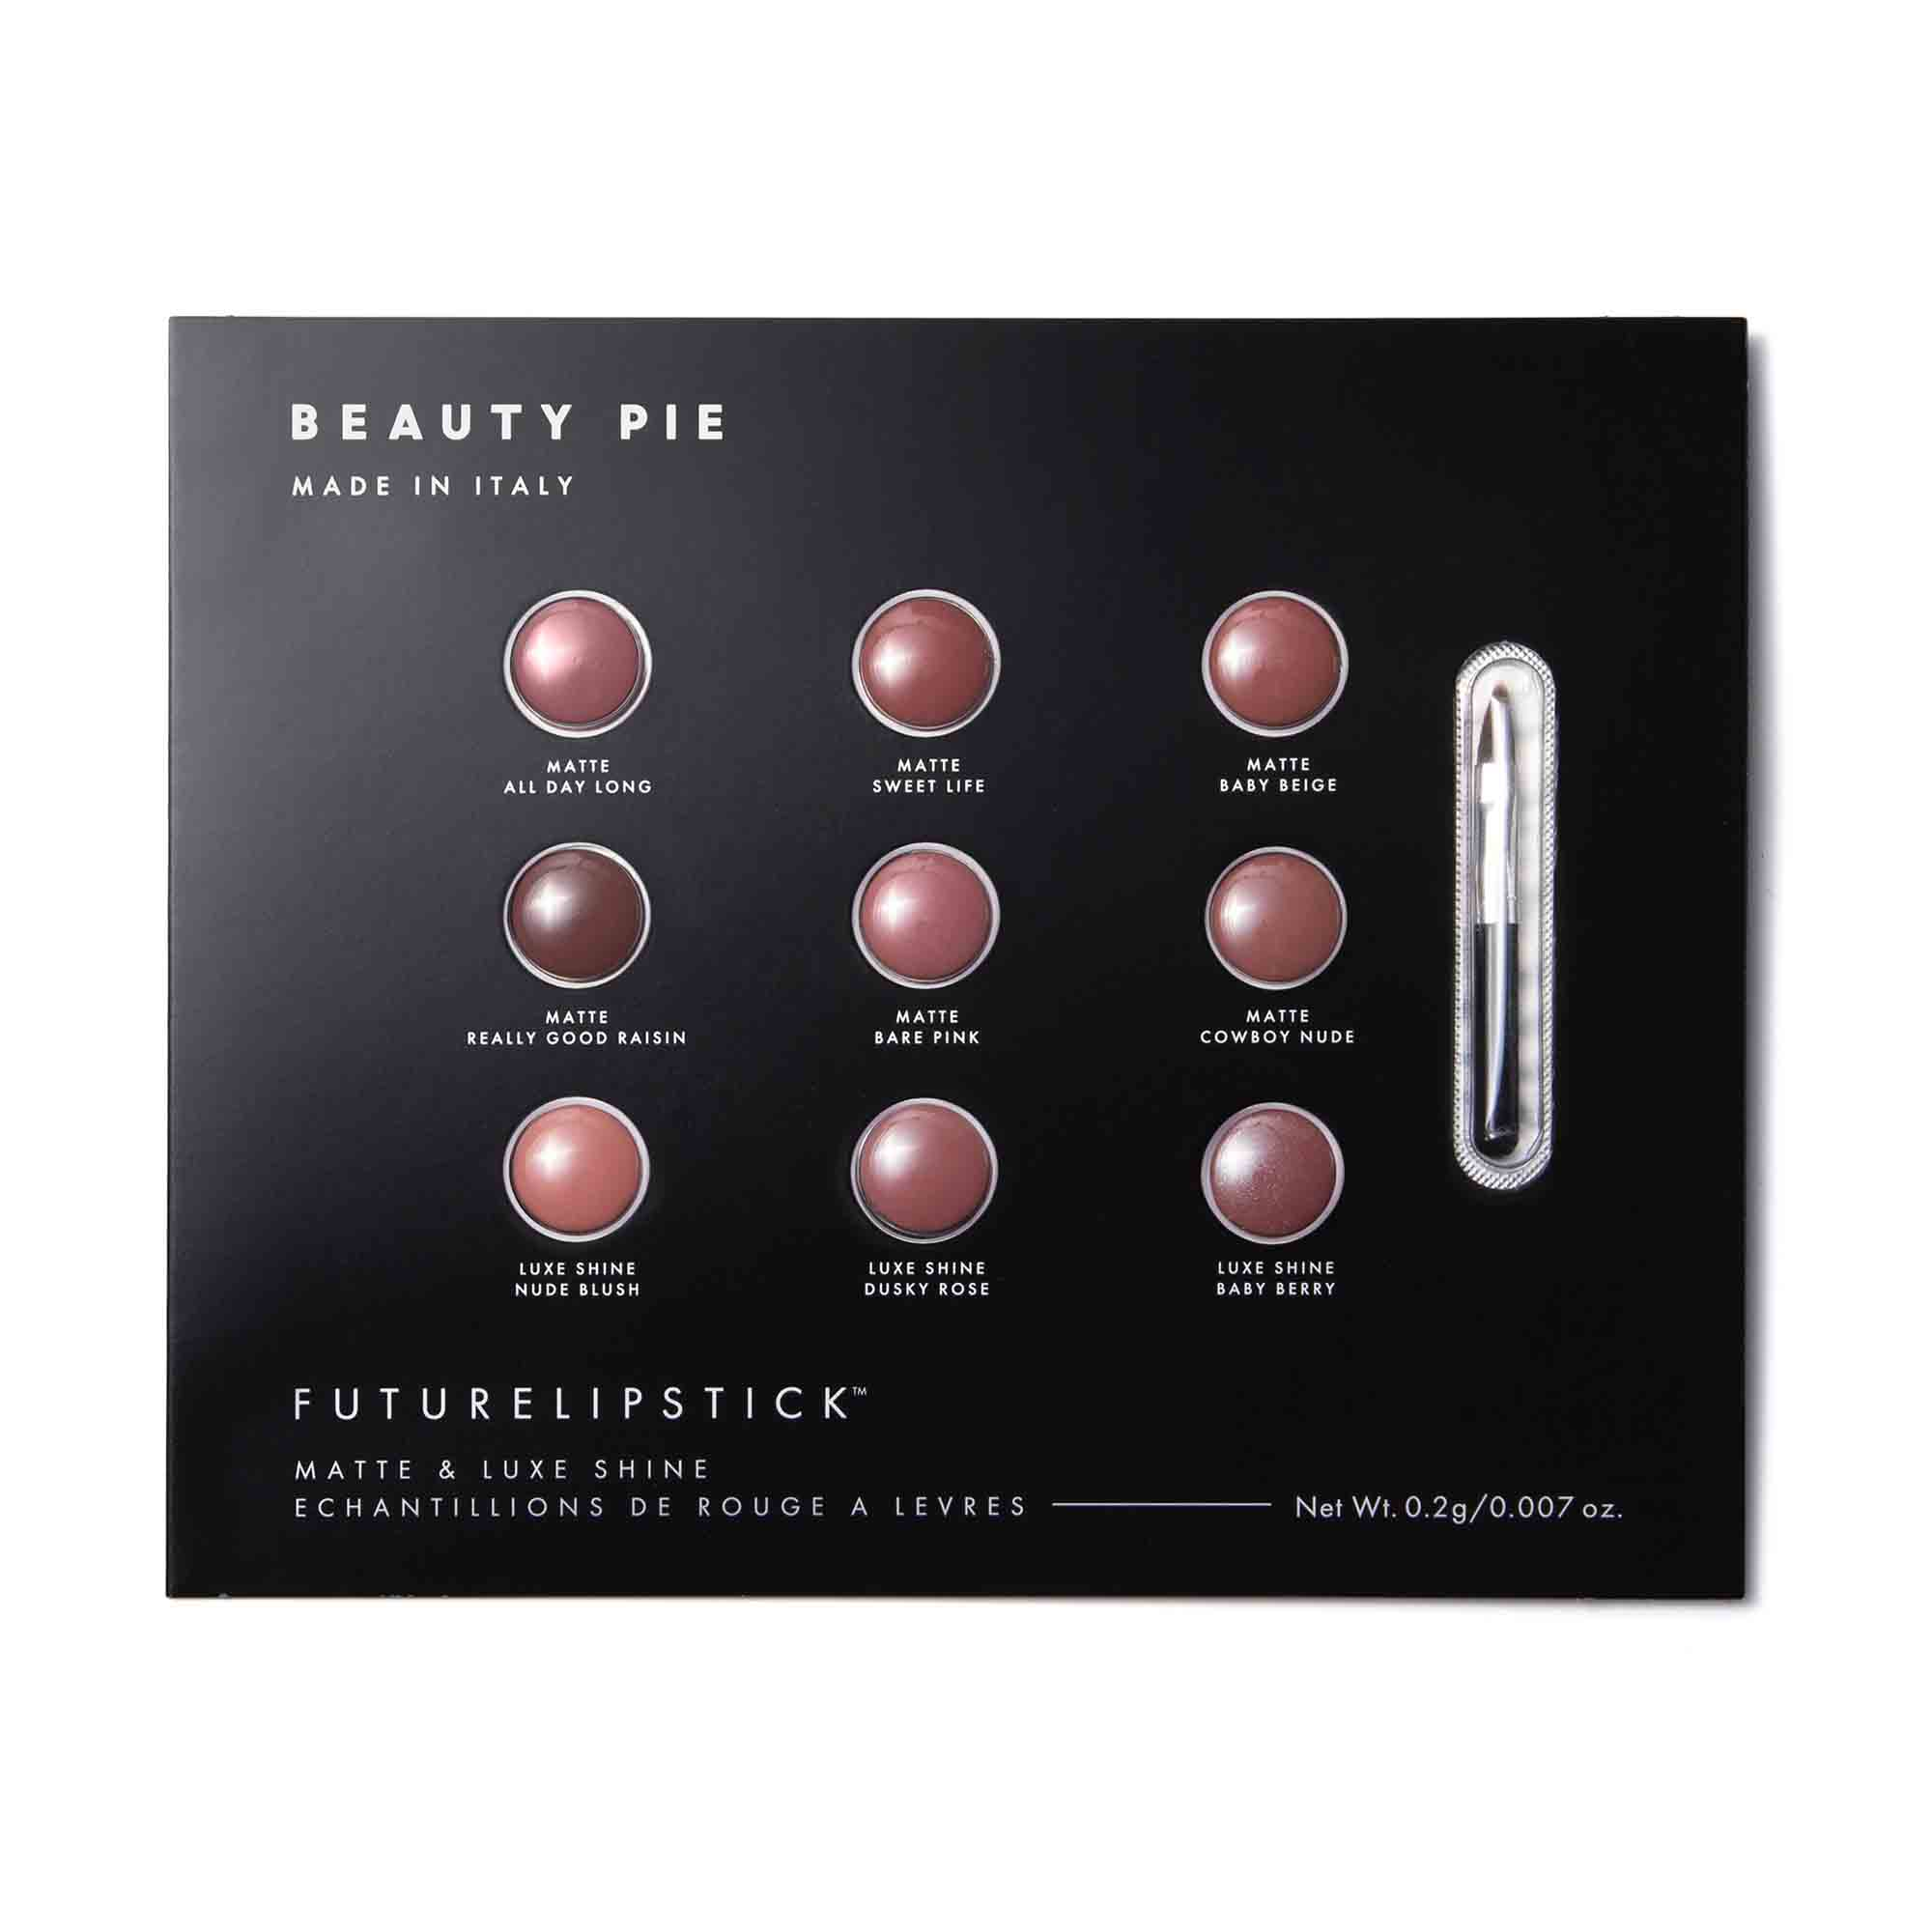 Futurelipstick™ Sample Set by Beauty Pie